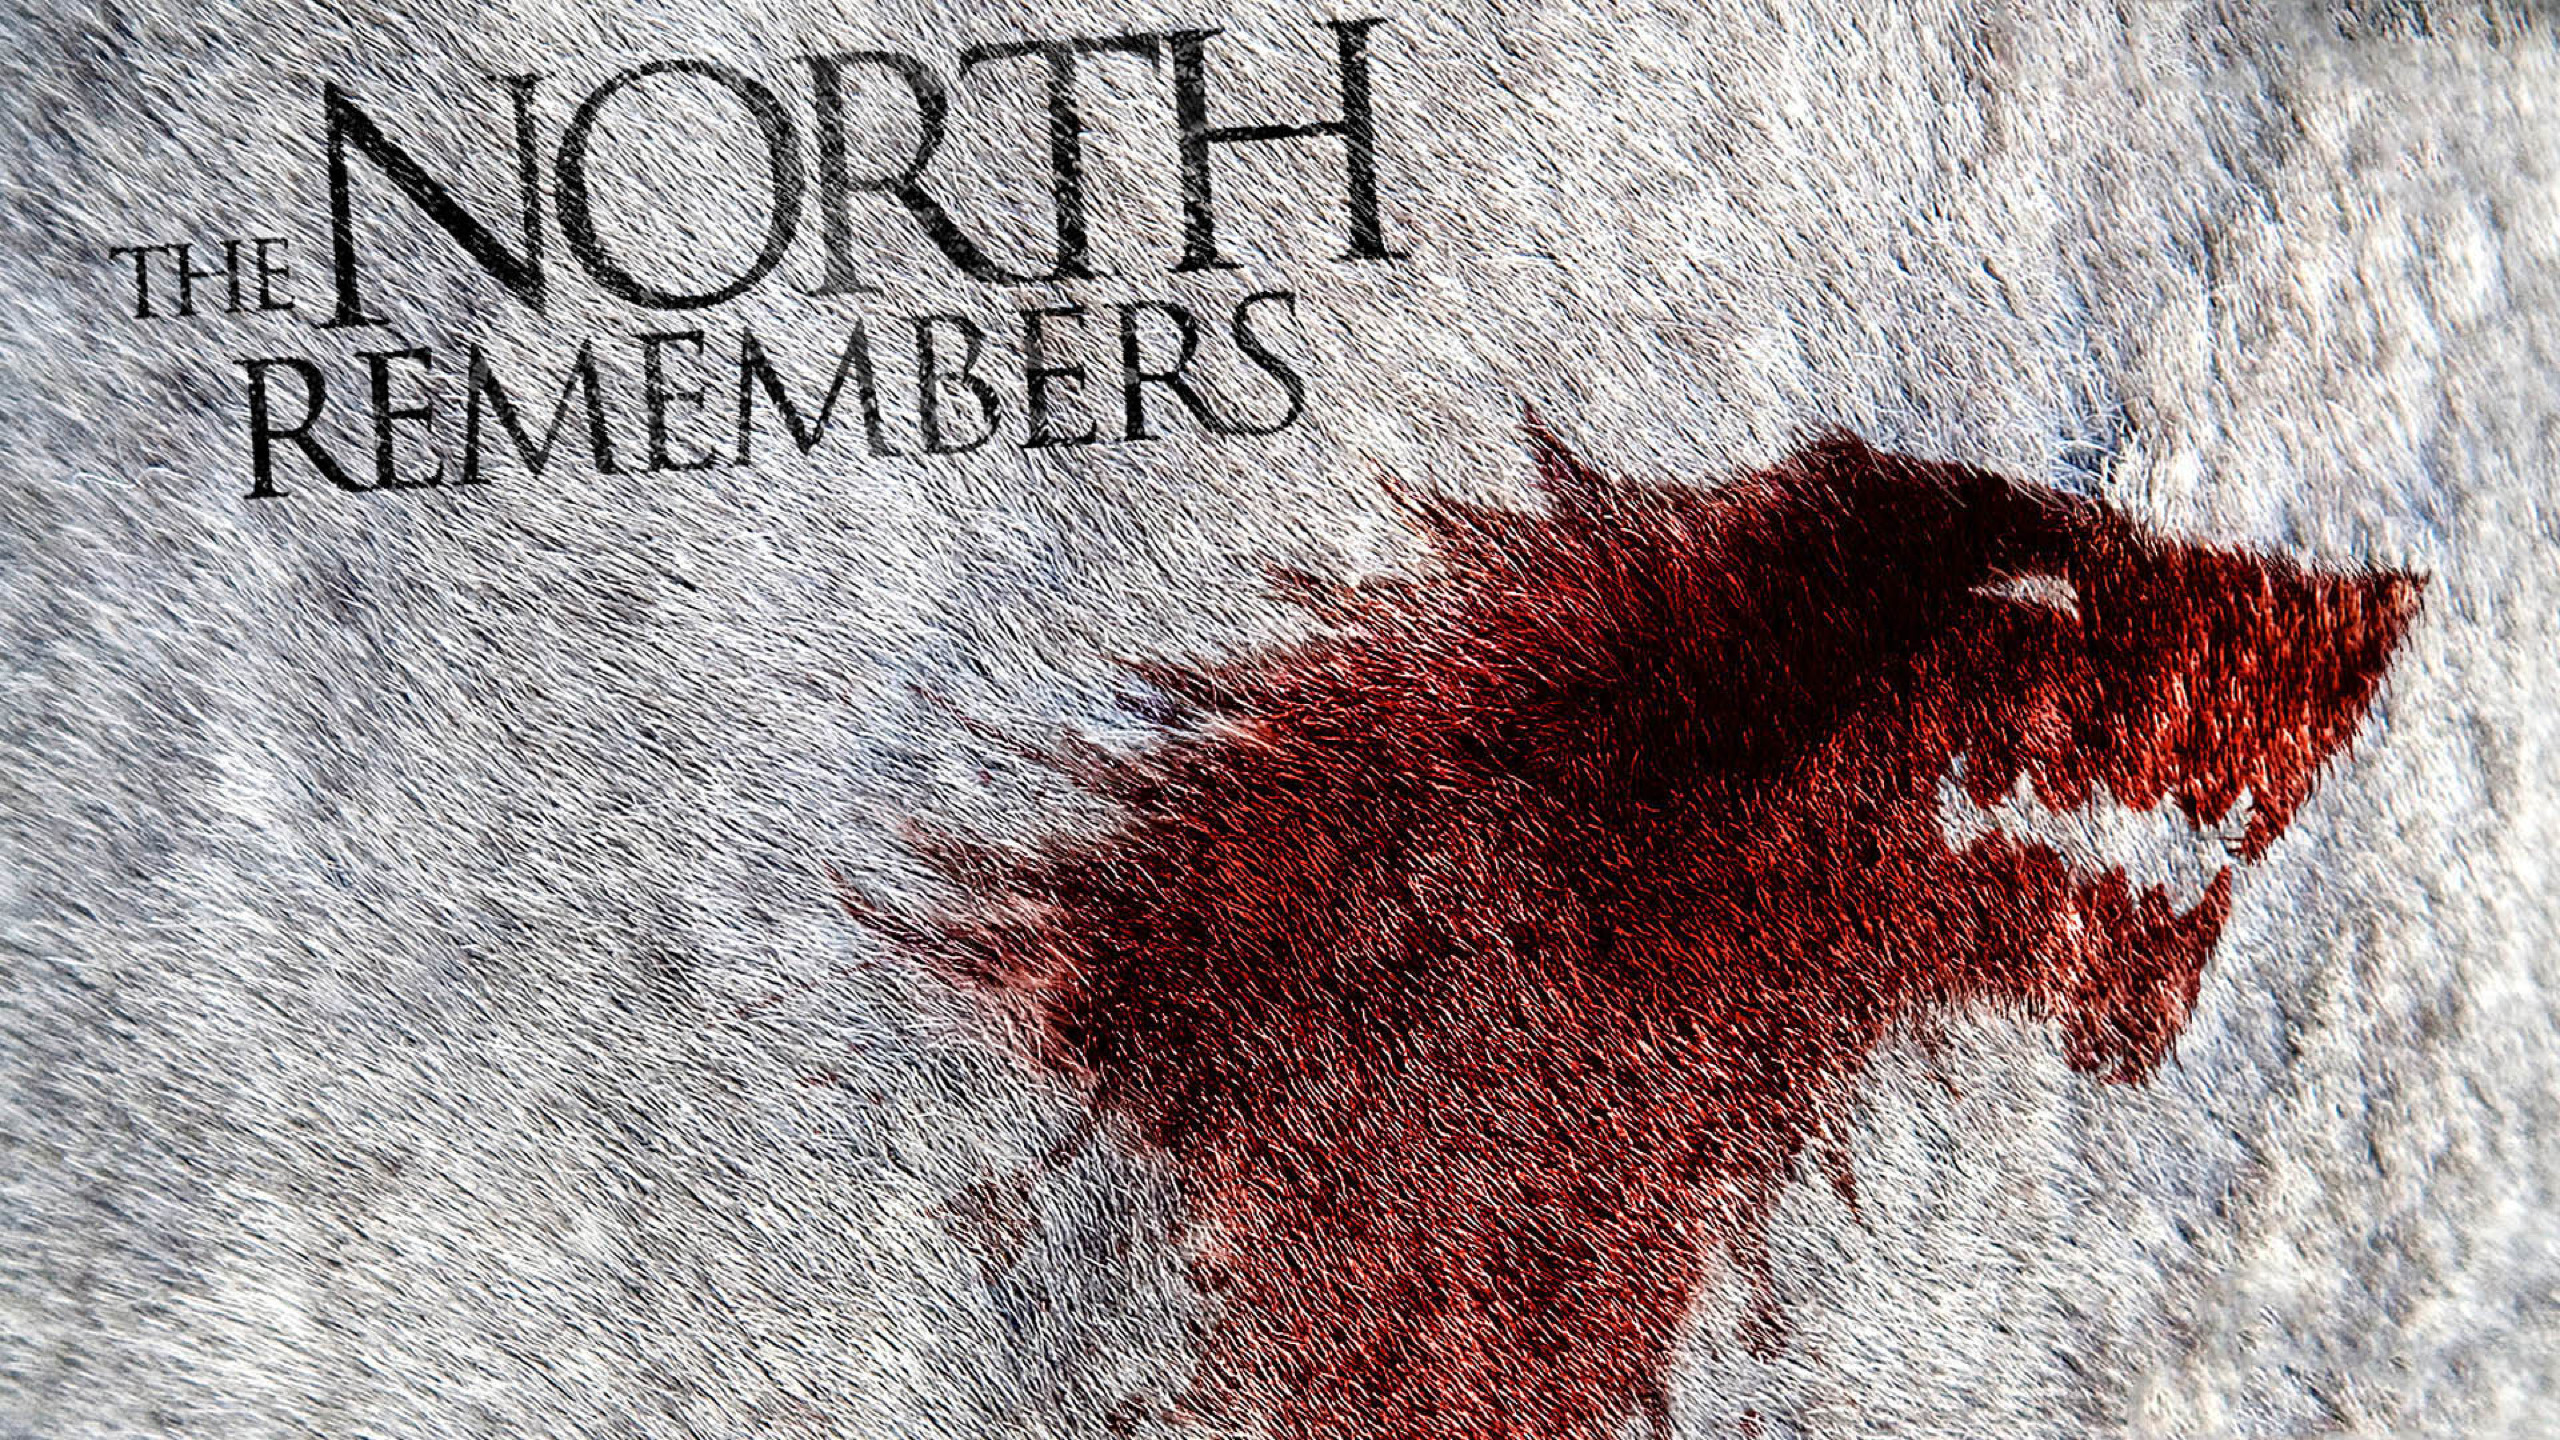 2560x1440 The North Remembers Game Of Thrones Tv Show Wallpaper 2560x1440